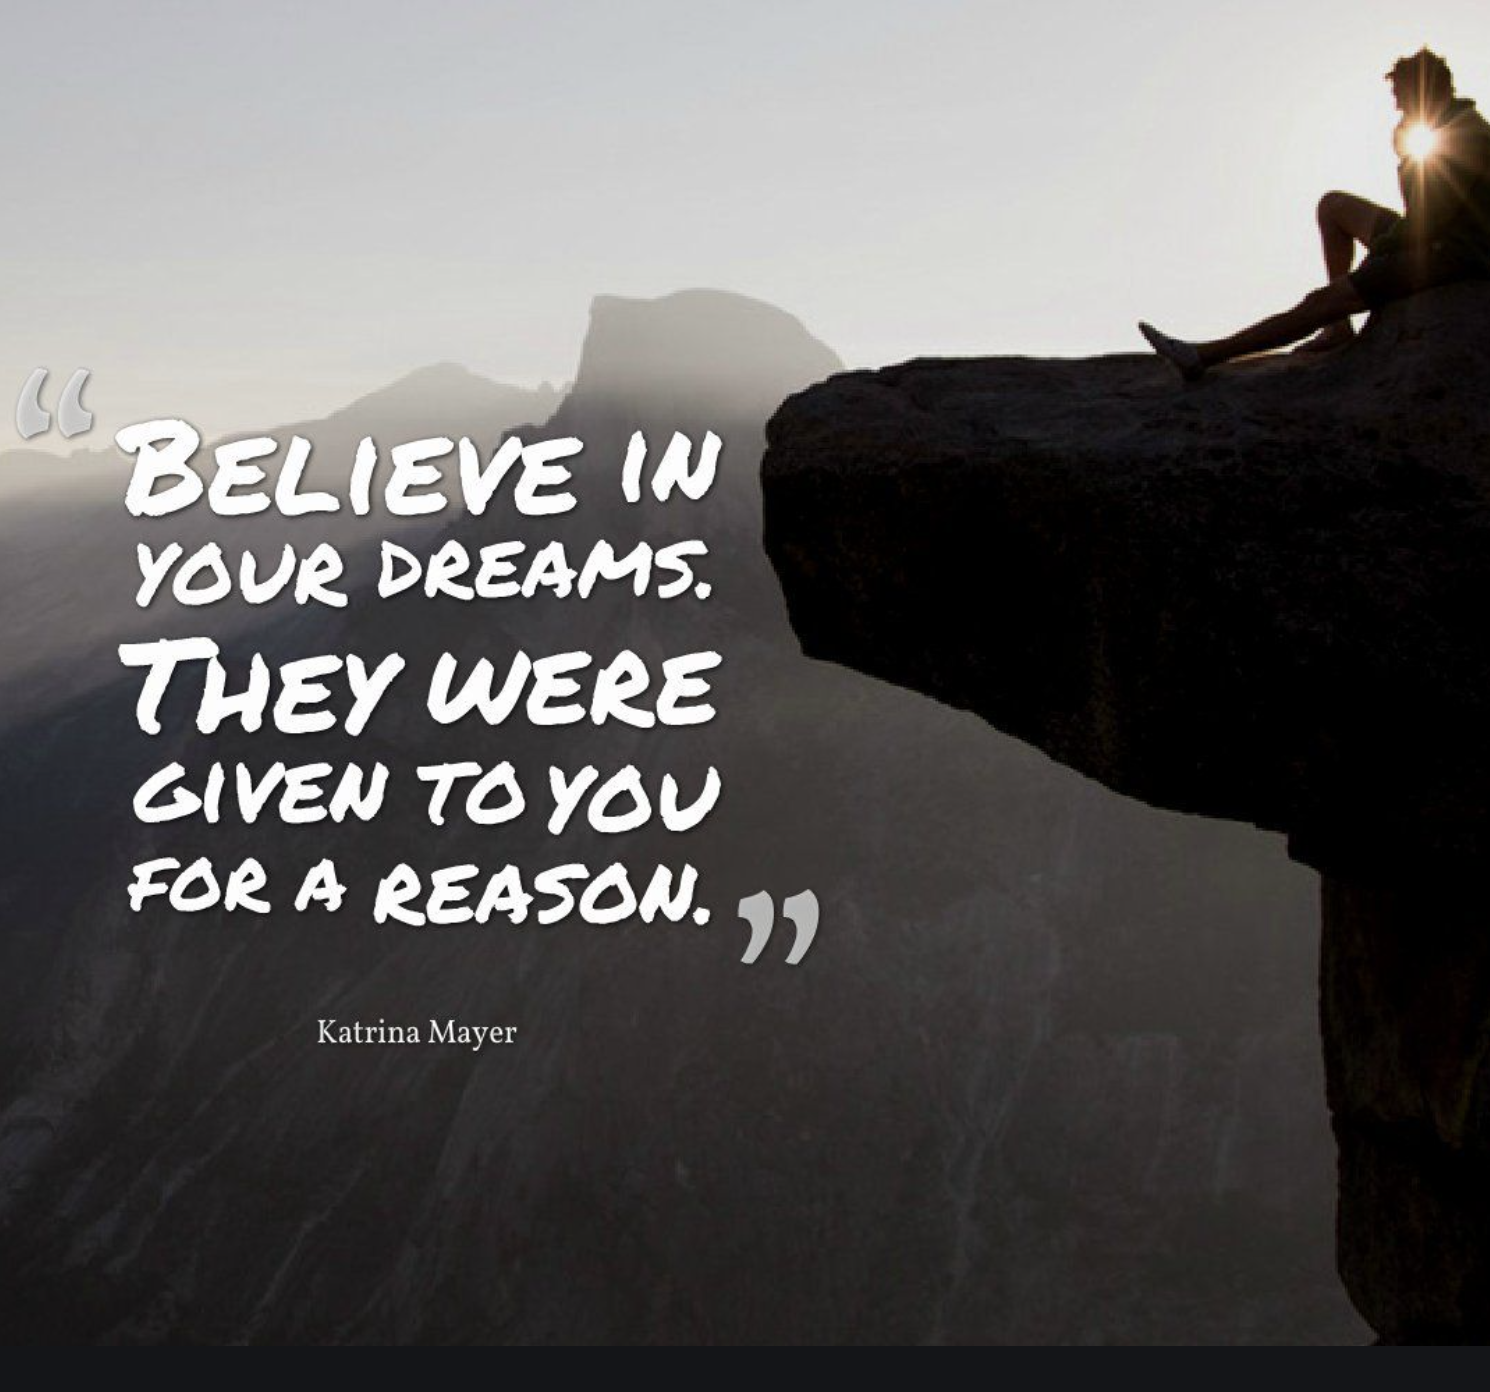 [Image] Believe in your dreams. They were given to you for a reason.